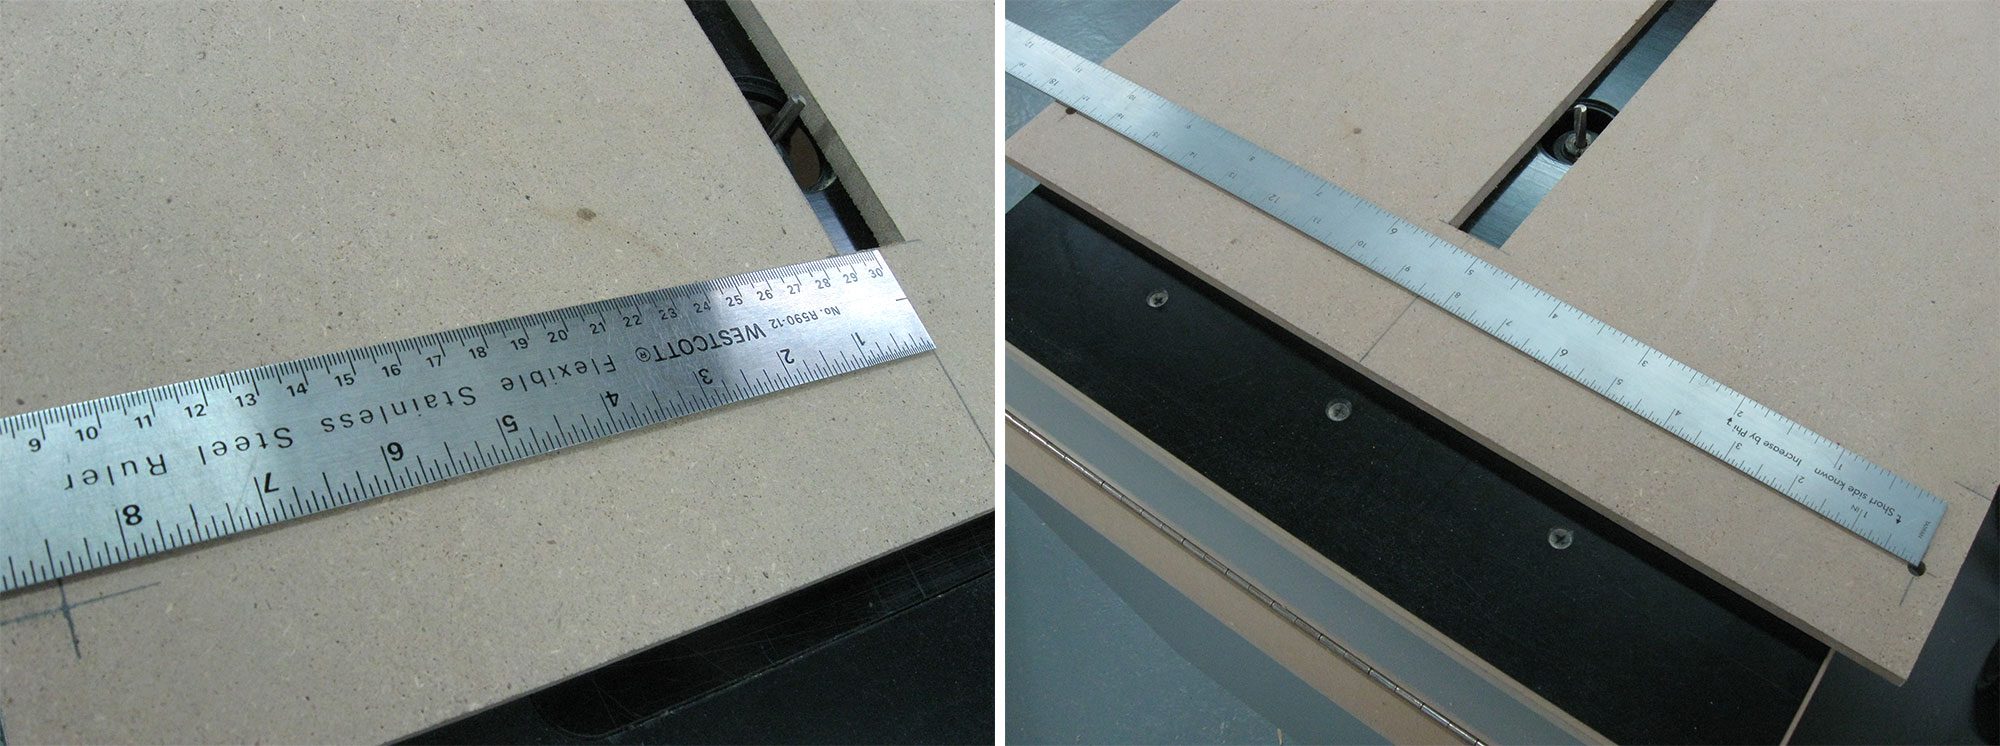 Left: Marking the position of the second pivot point. Right: Marking start/stop points of arced slots.